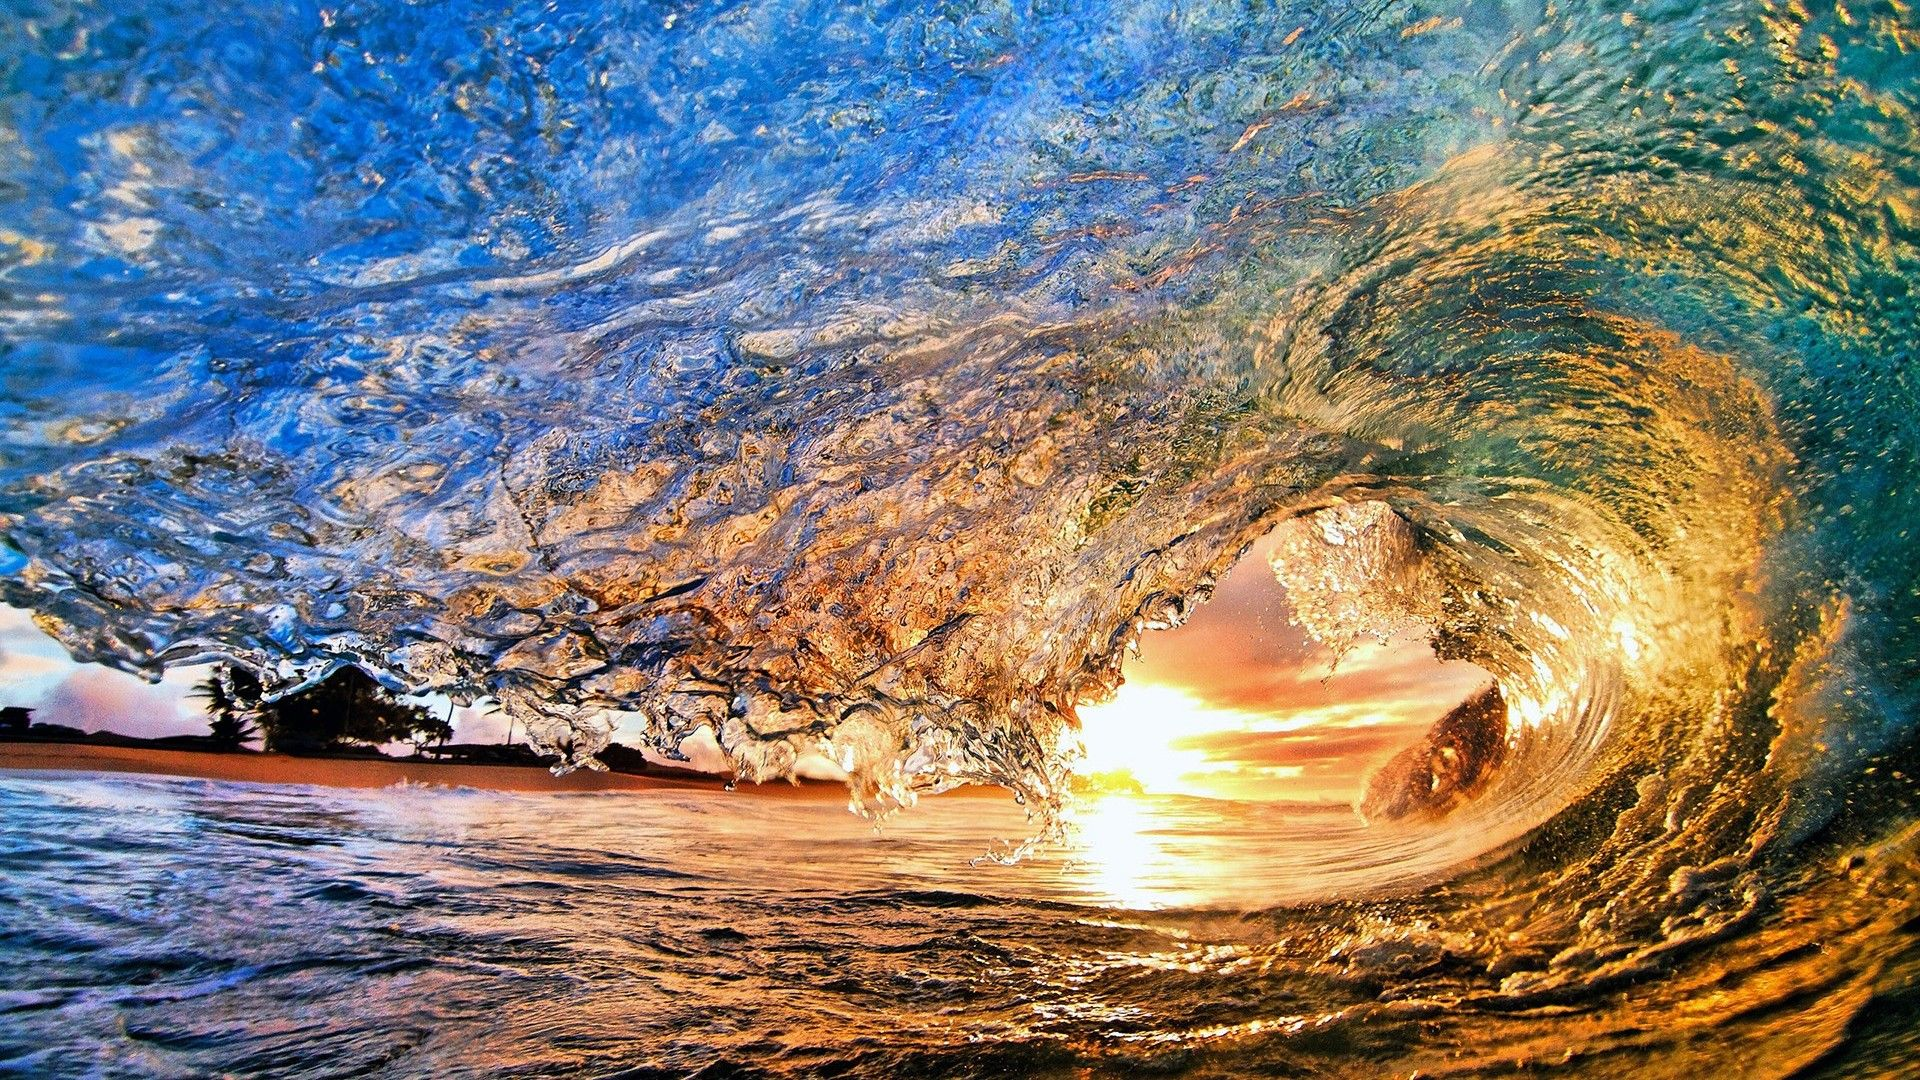 Rapture Surfcamps Surfing Wallpapers HD Wallpapers